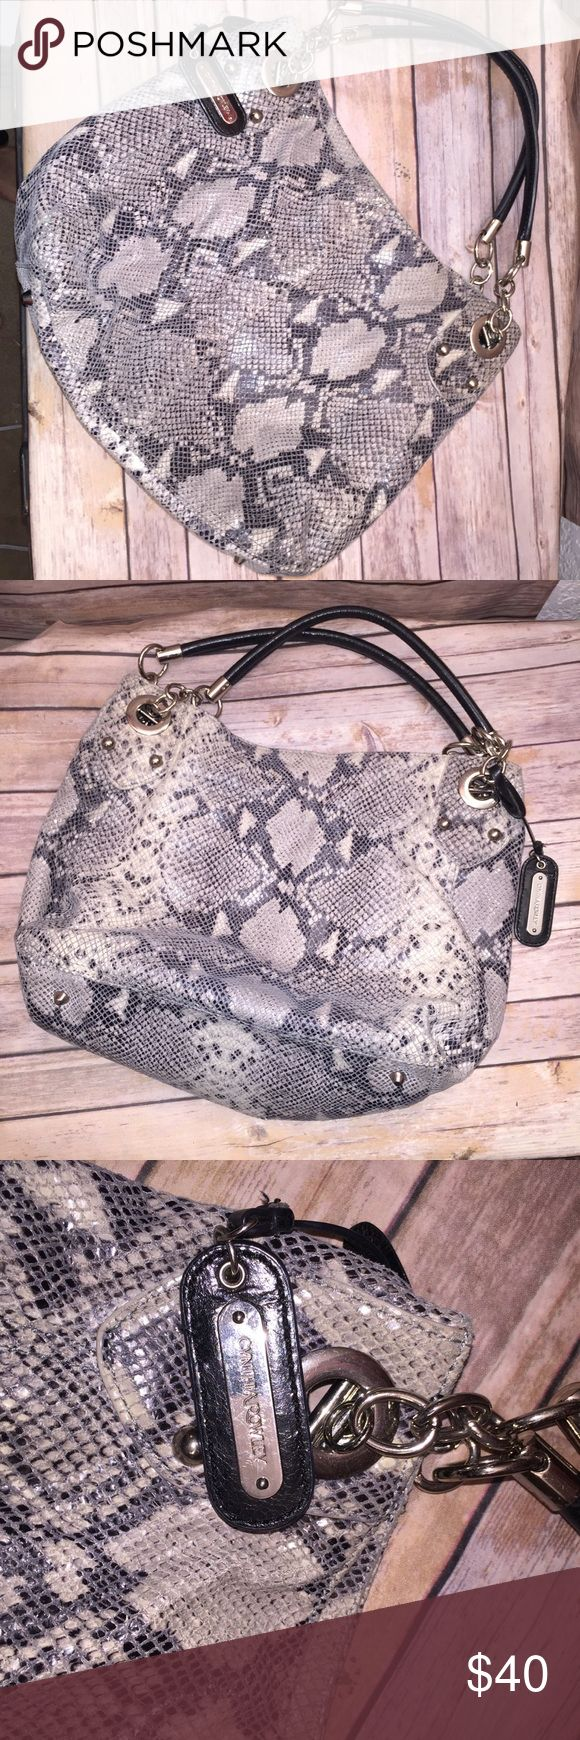 Cynthia Rowley Genuine Leather Bag Excellent Used Condition. Inside shows signs of wear which can be washed out. Outside is soft leather. Snake Motif colors are Cream and black Cynthia Rowley Bags Totes